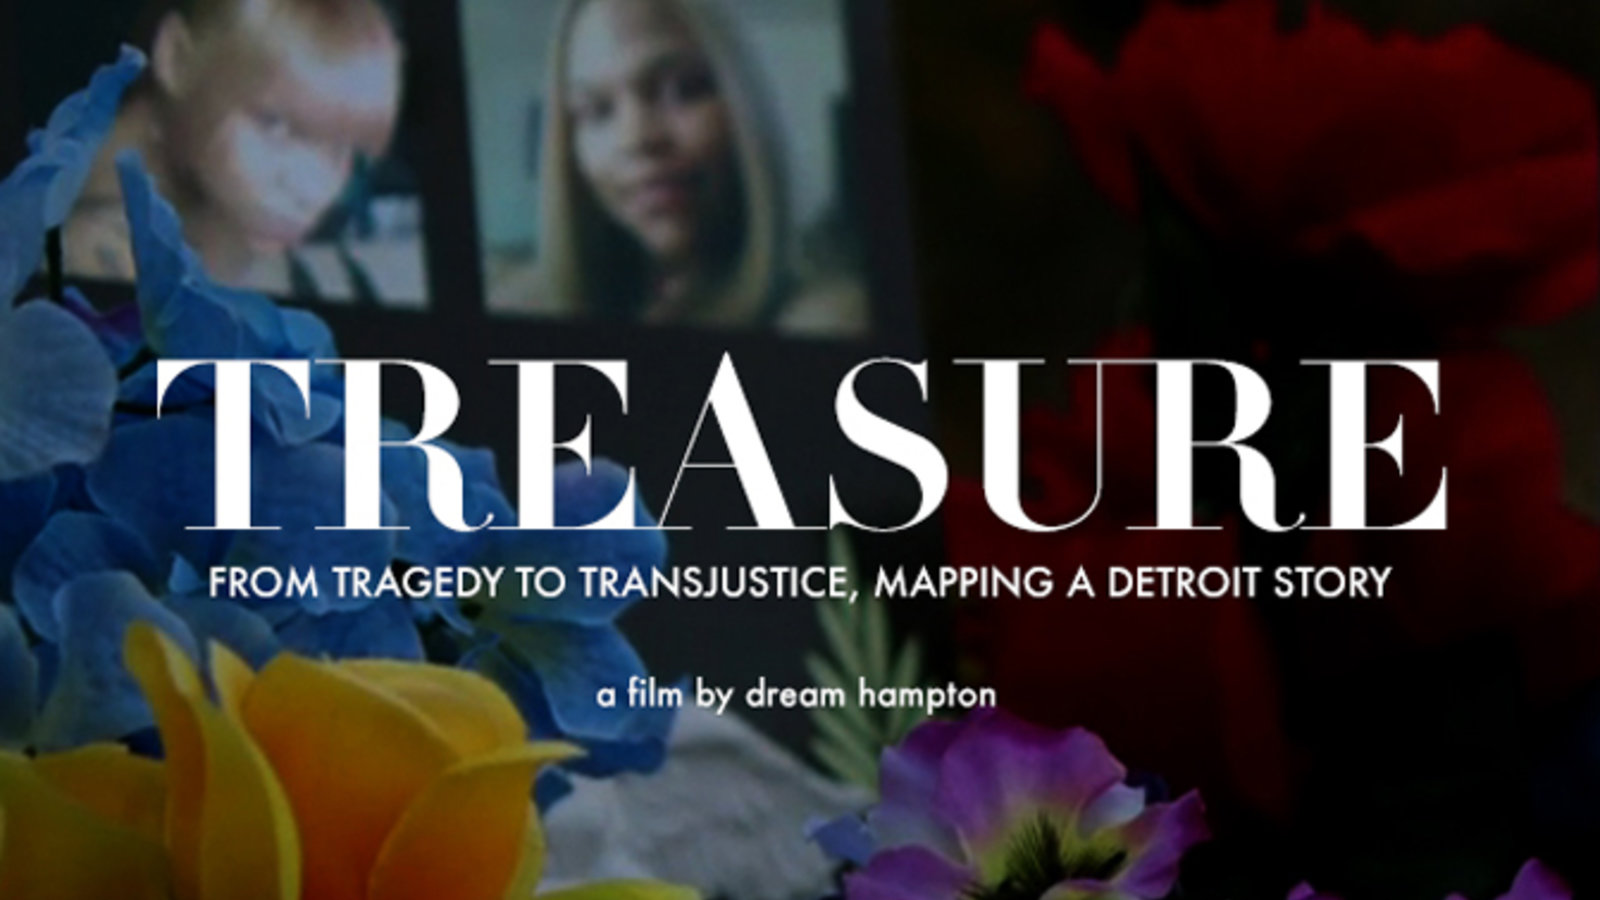 Treasure - Hate Crimes Against the Transgender Community